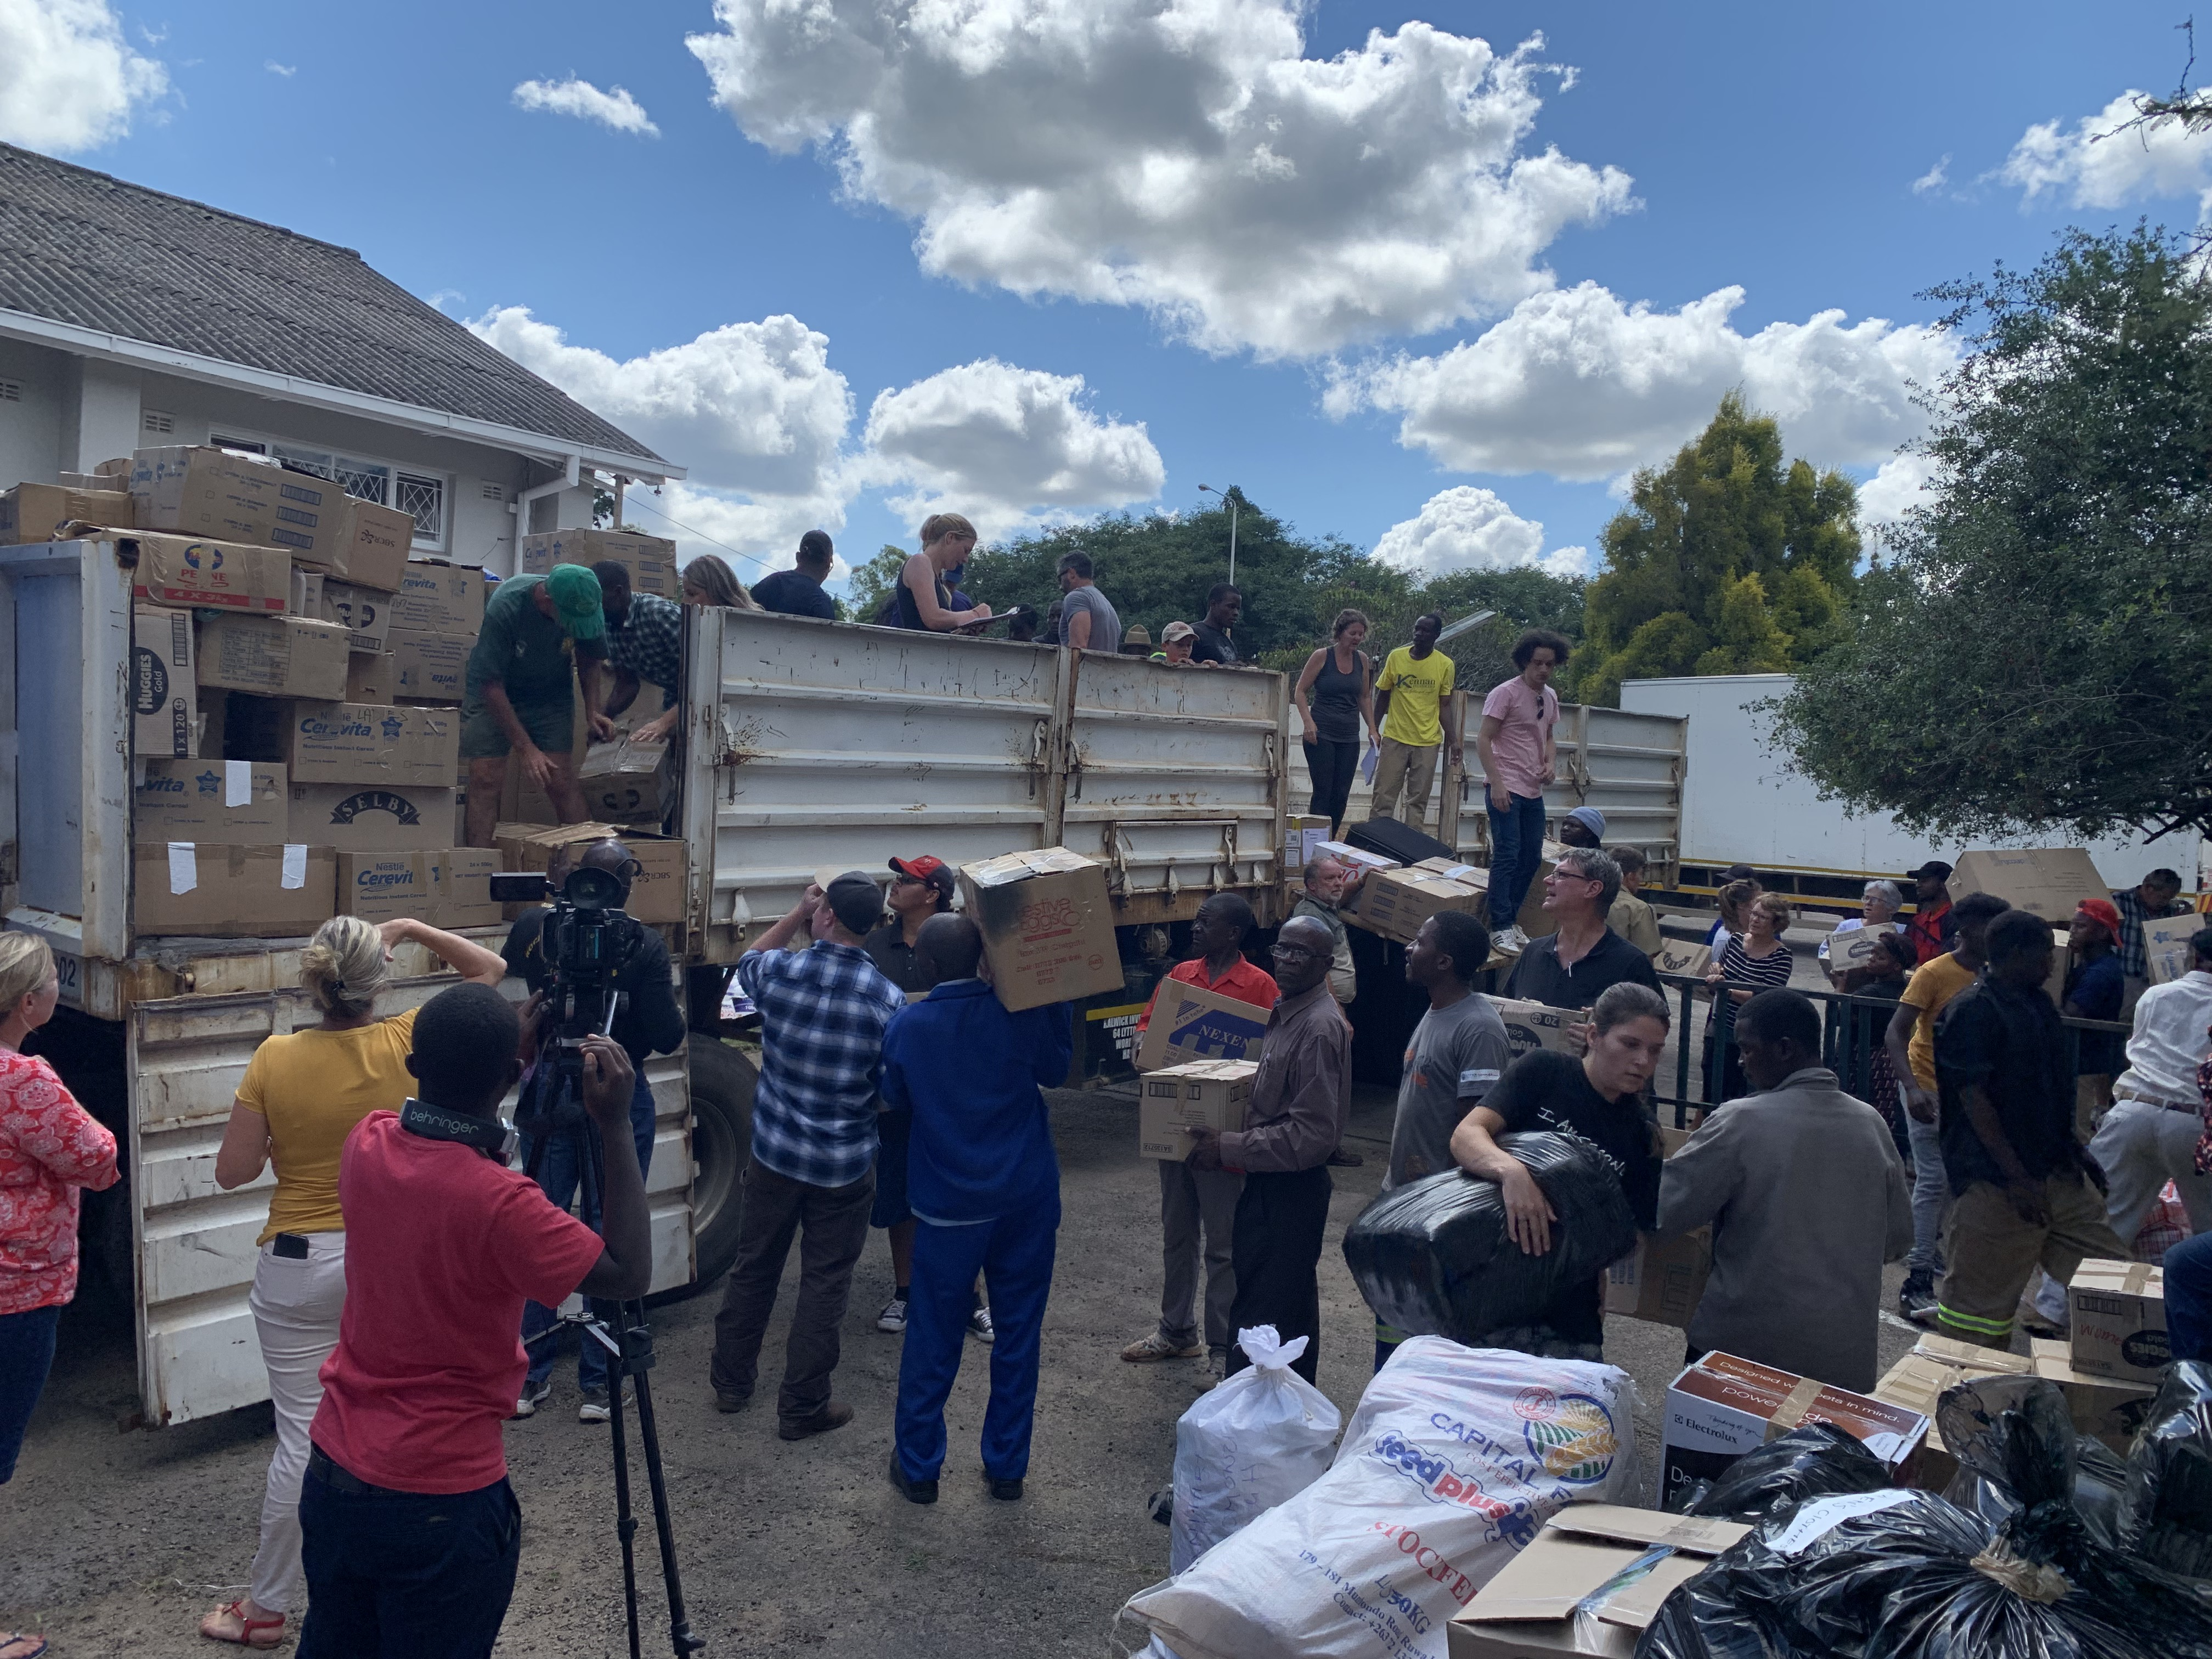 Volunteers bring donated goods to be transported to Chimanimani and other affected areas by Cyclone Idai, March 19, 2019.